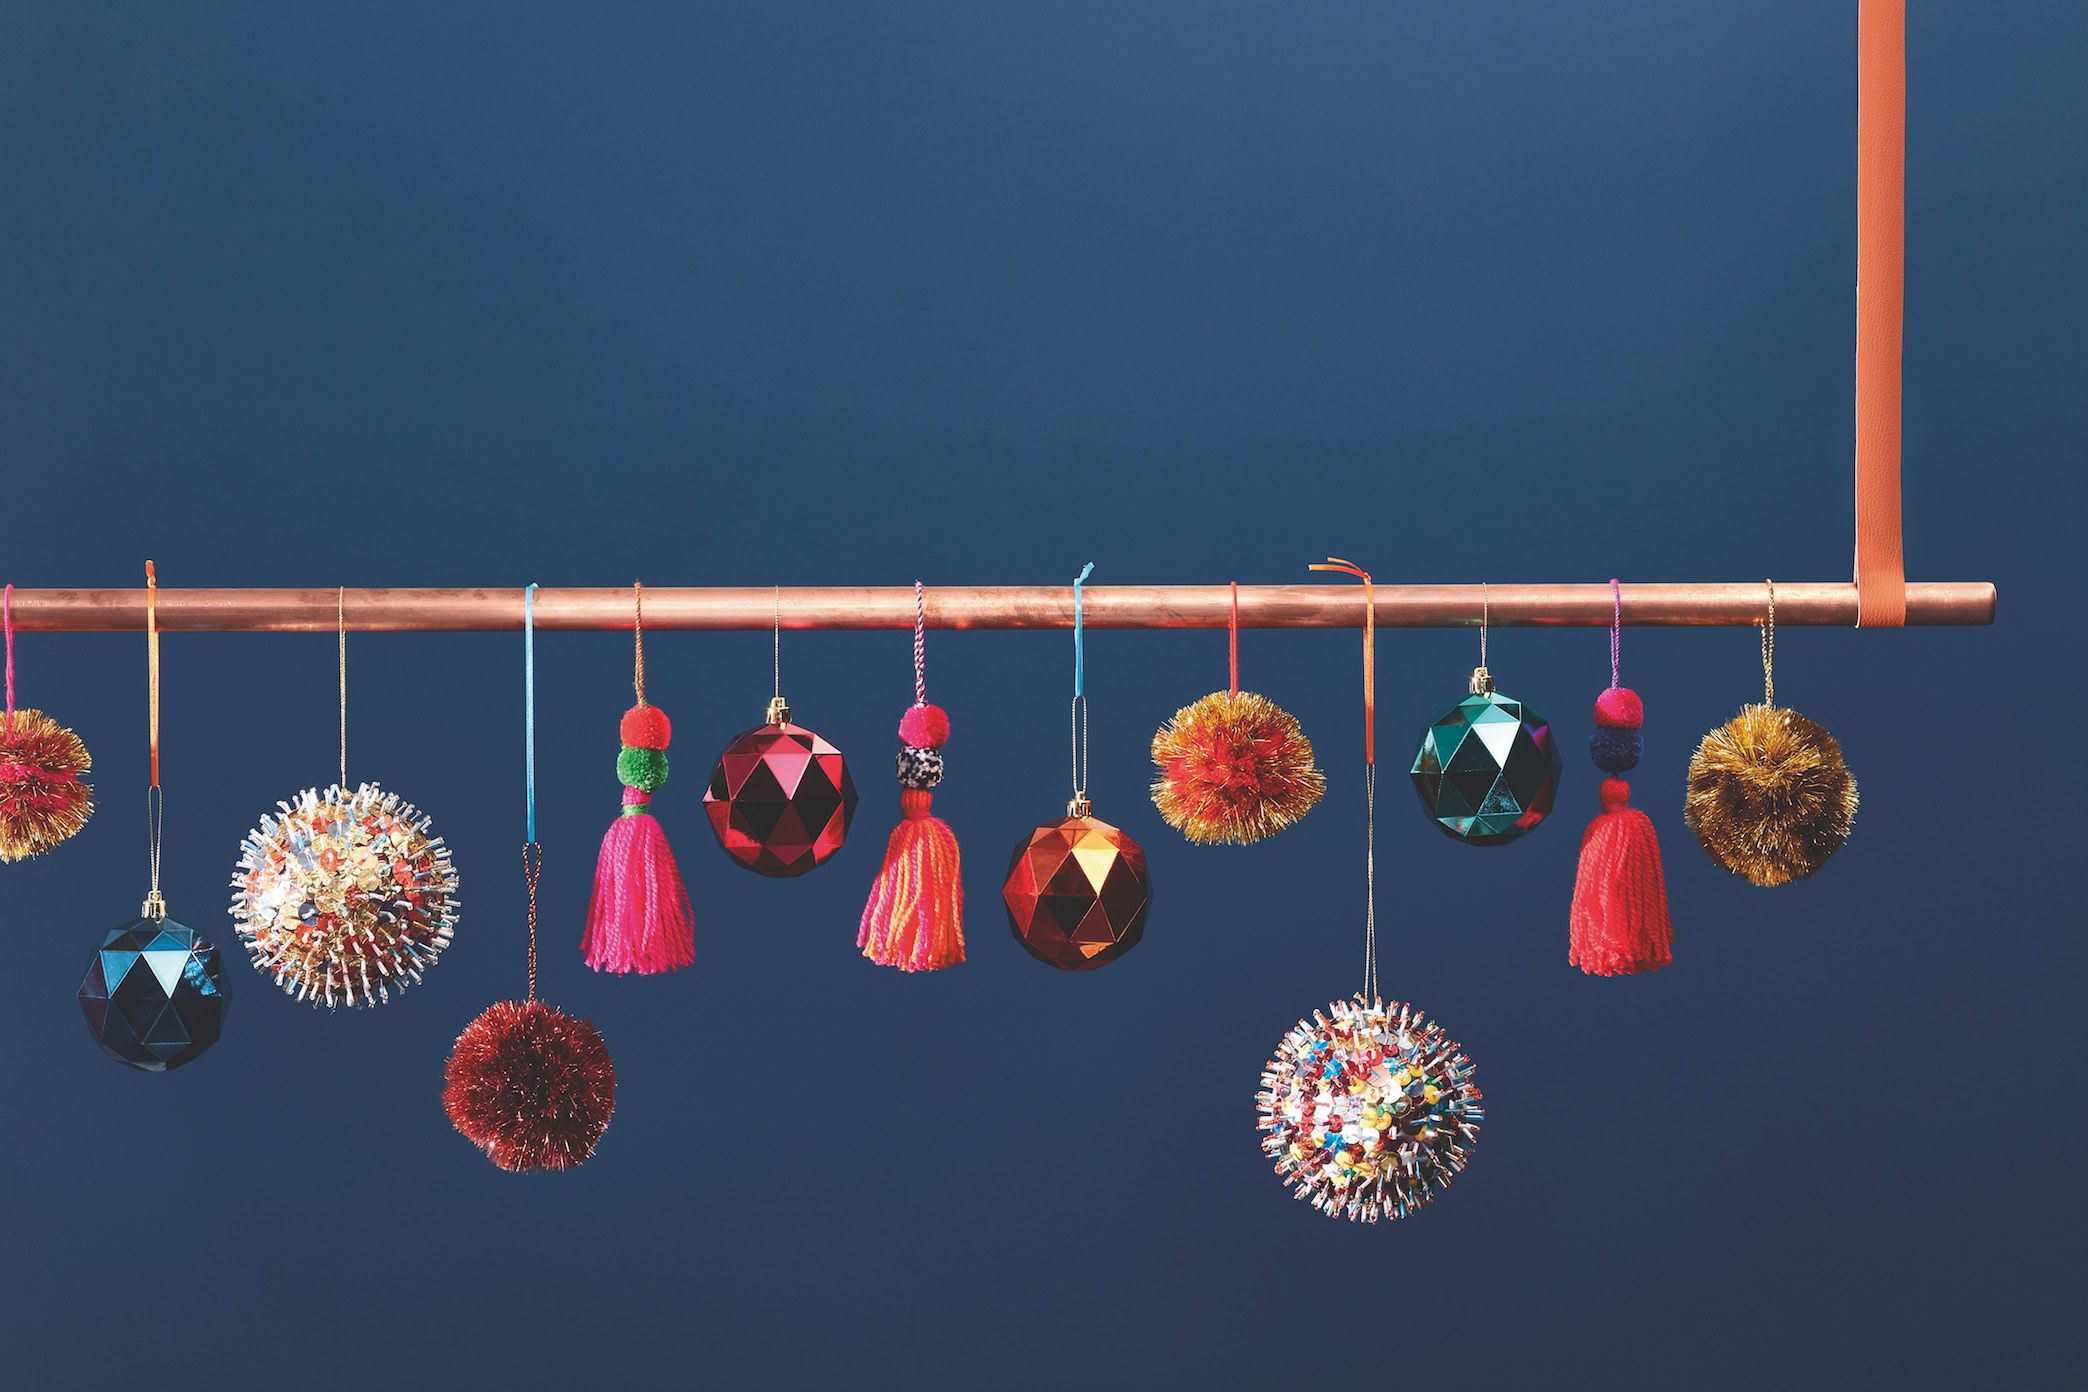 Habitat's best-selling Christmas baubles put the fun back into decorating